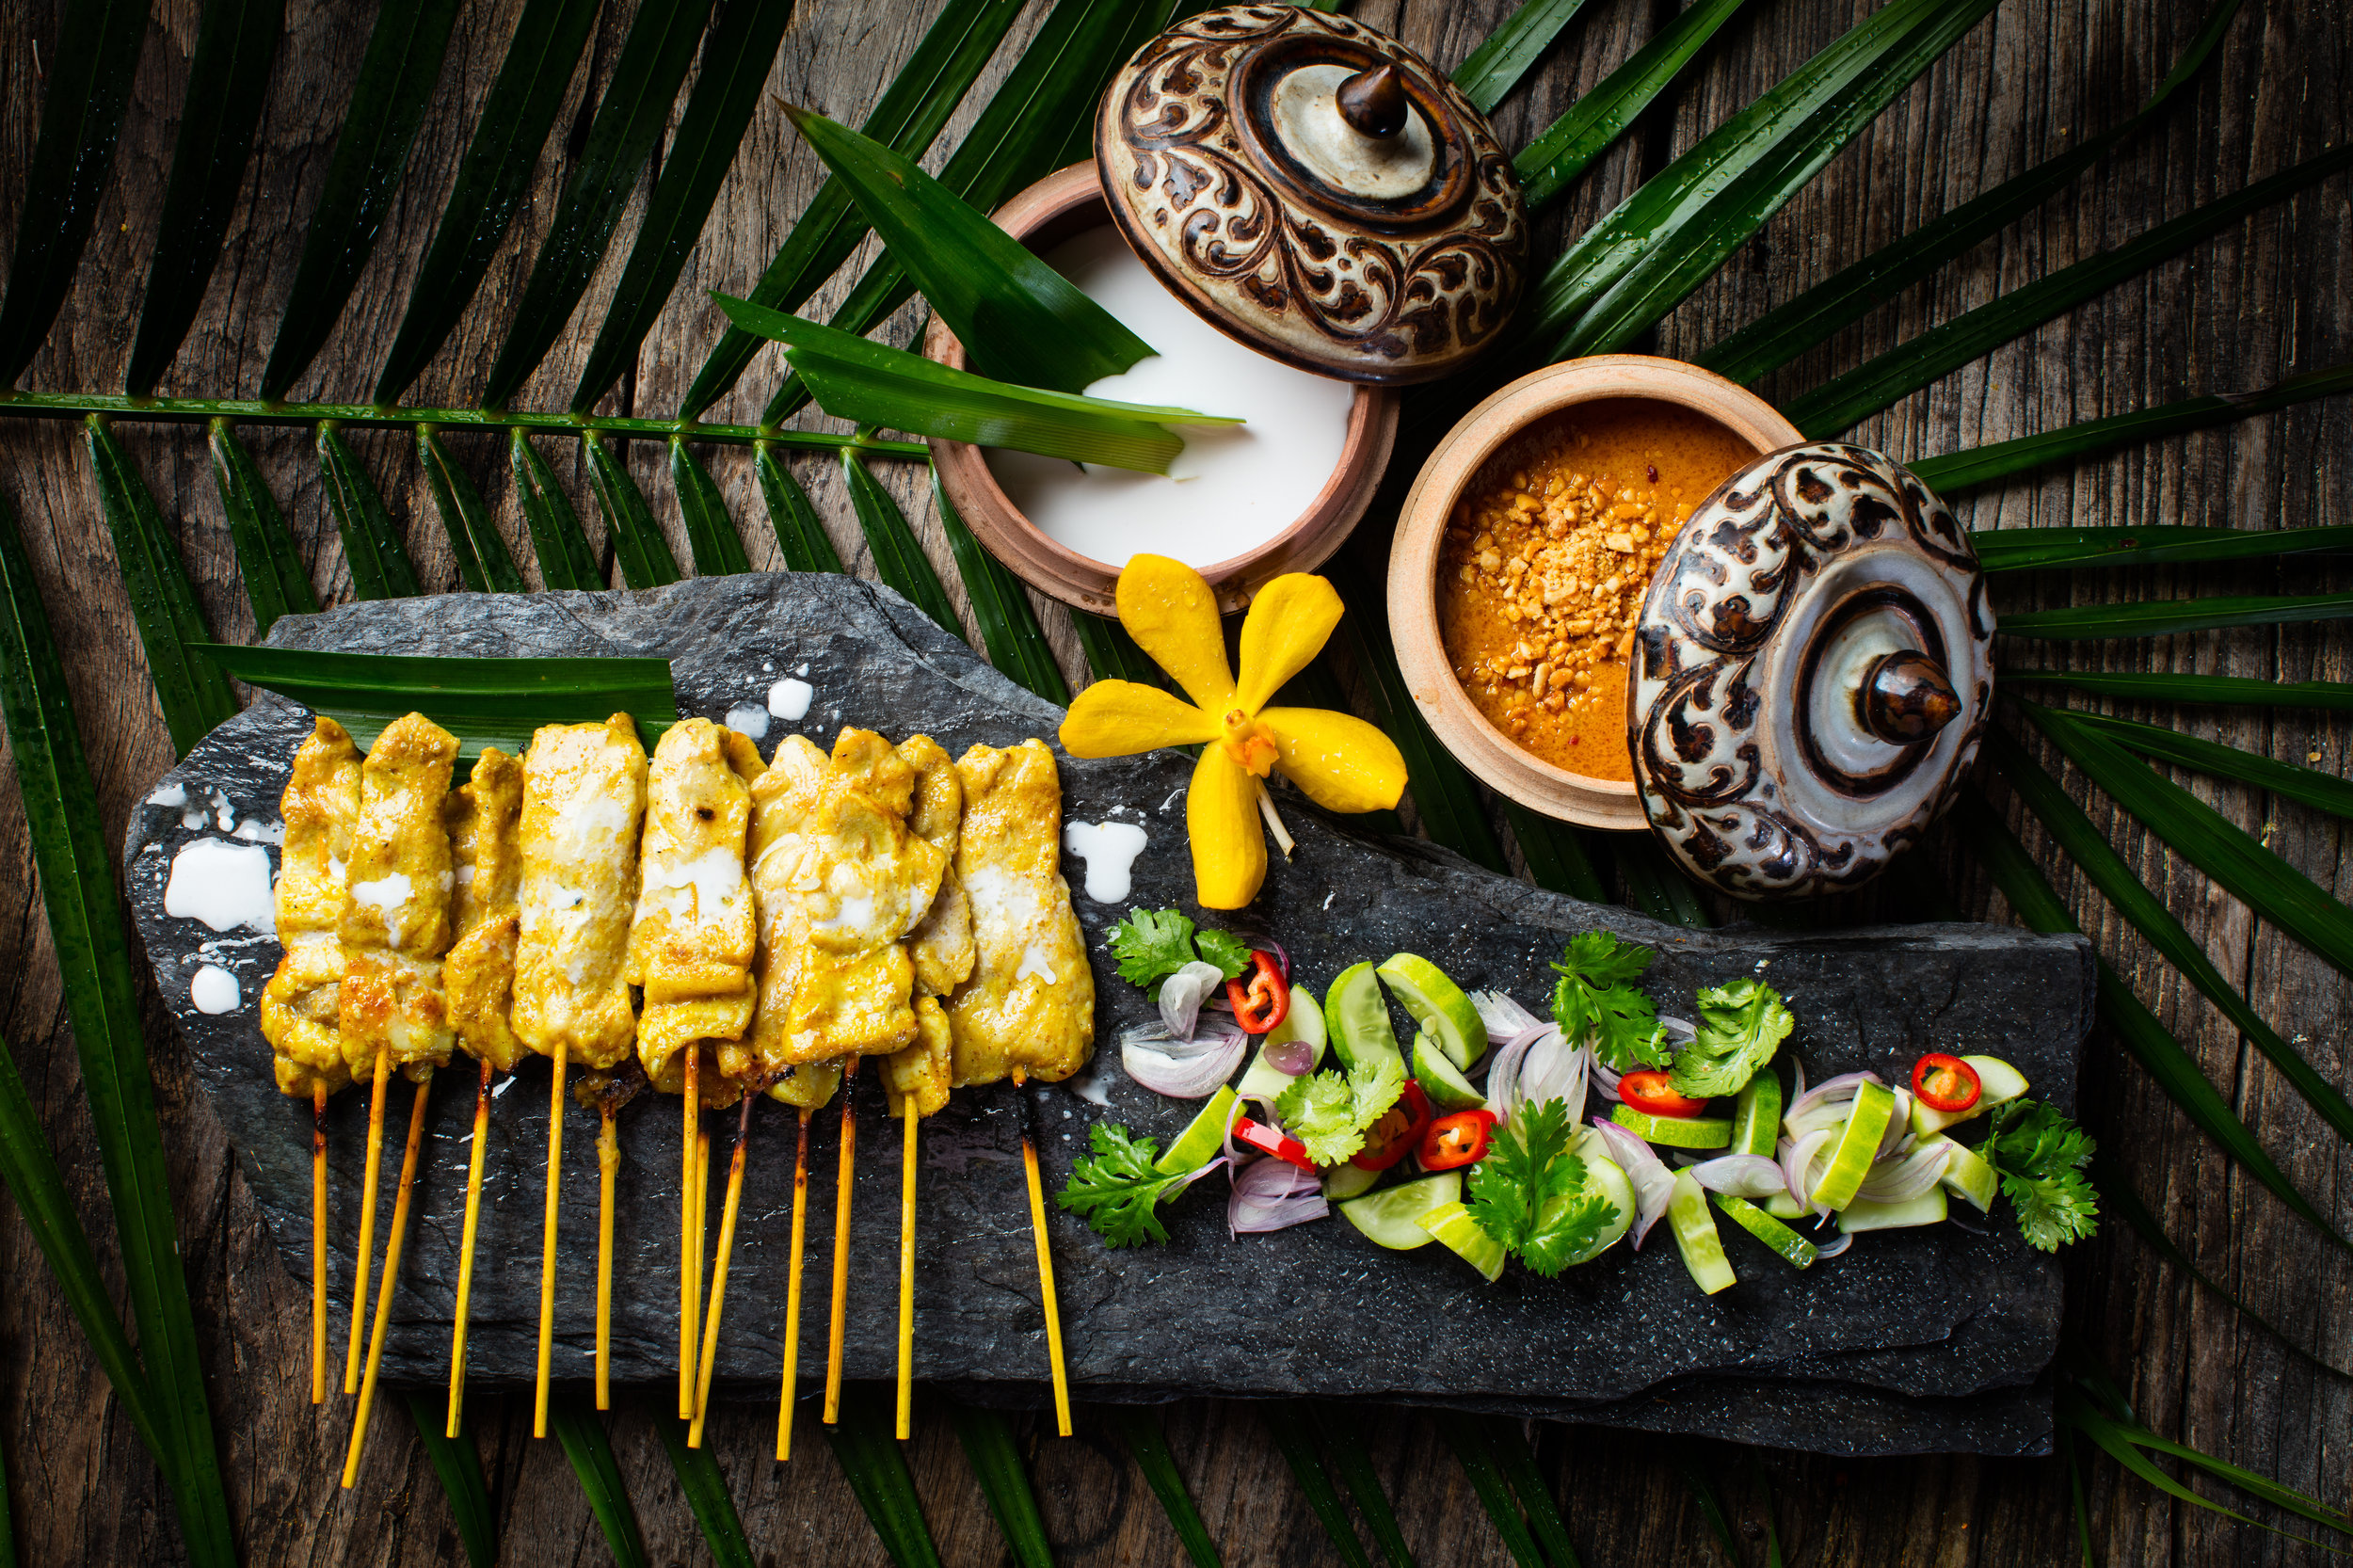 Preview-Moscow-Pork Satay with Peanut Sauce Grilled Pork on a Stick -30277PS.JPG